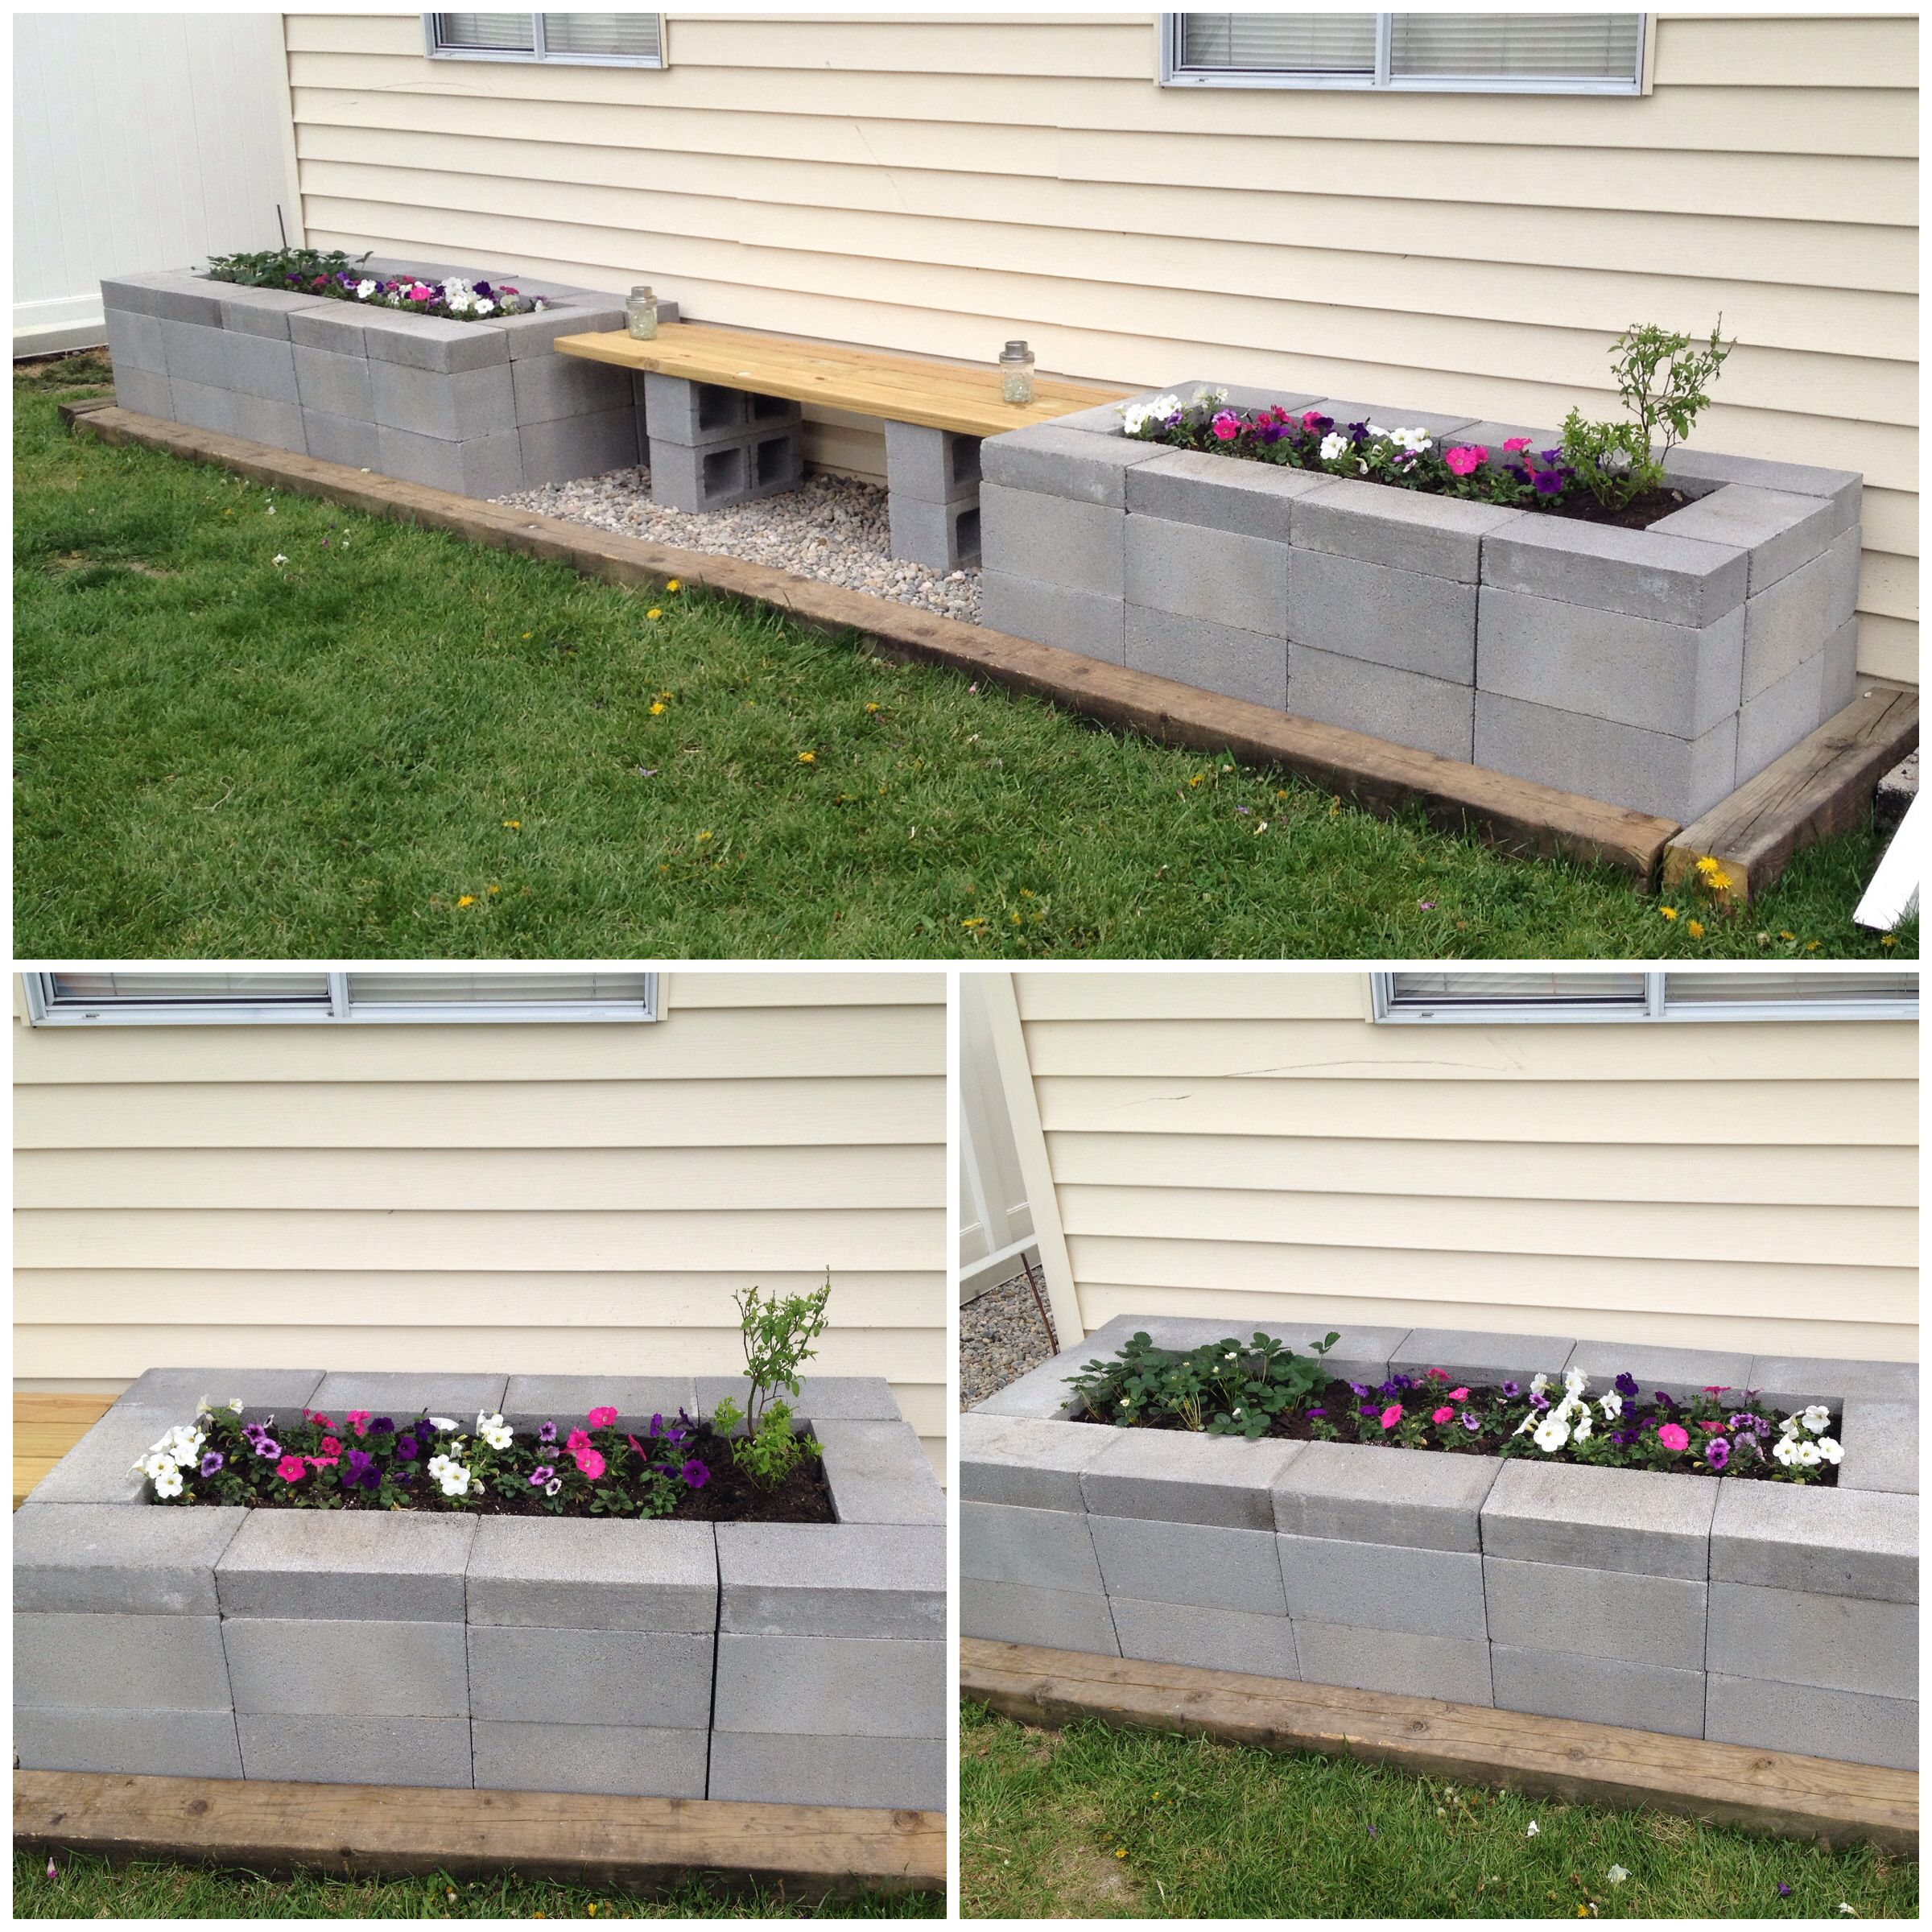 Cinder Block Raised Garden Bed with Bench | Things to Build ...